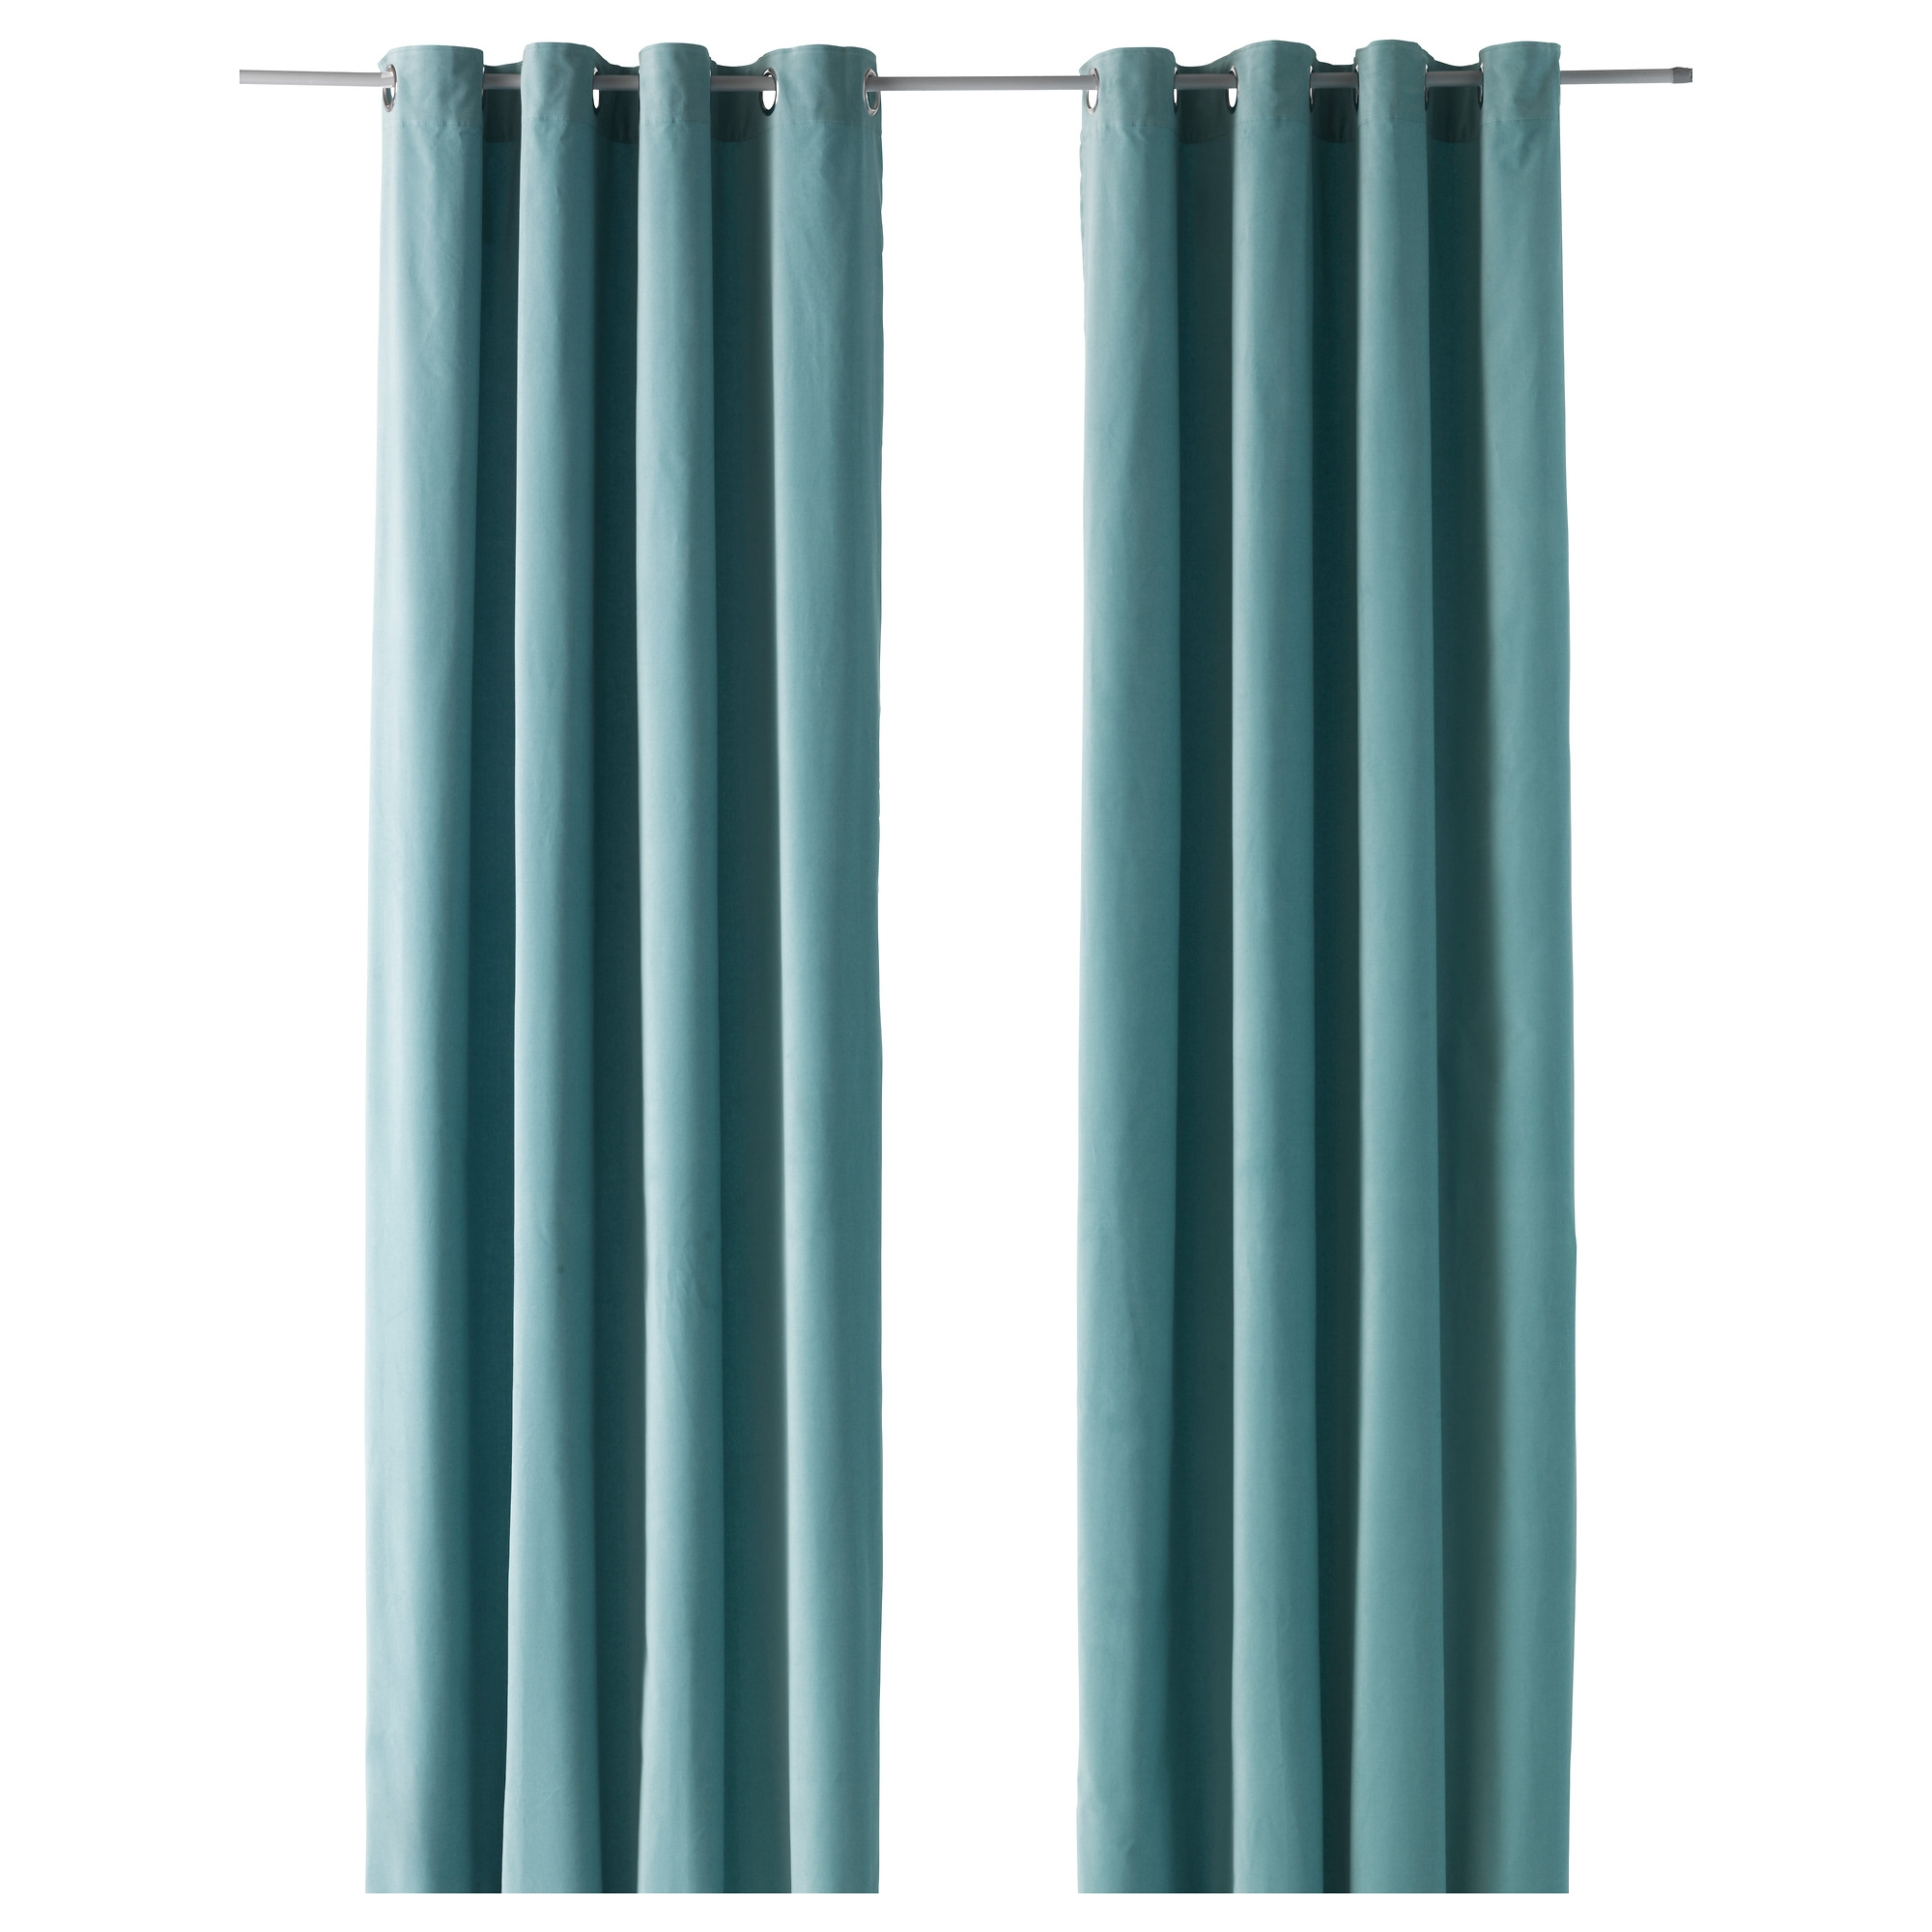 Sanela Curtains 1 Pair 55×98 Ikea Intended For Velveteen Curtains (View 11 of 15)